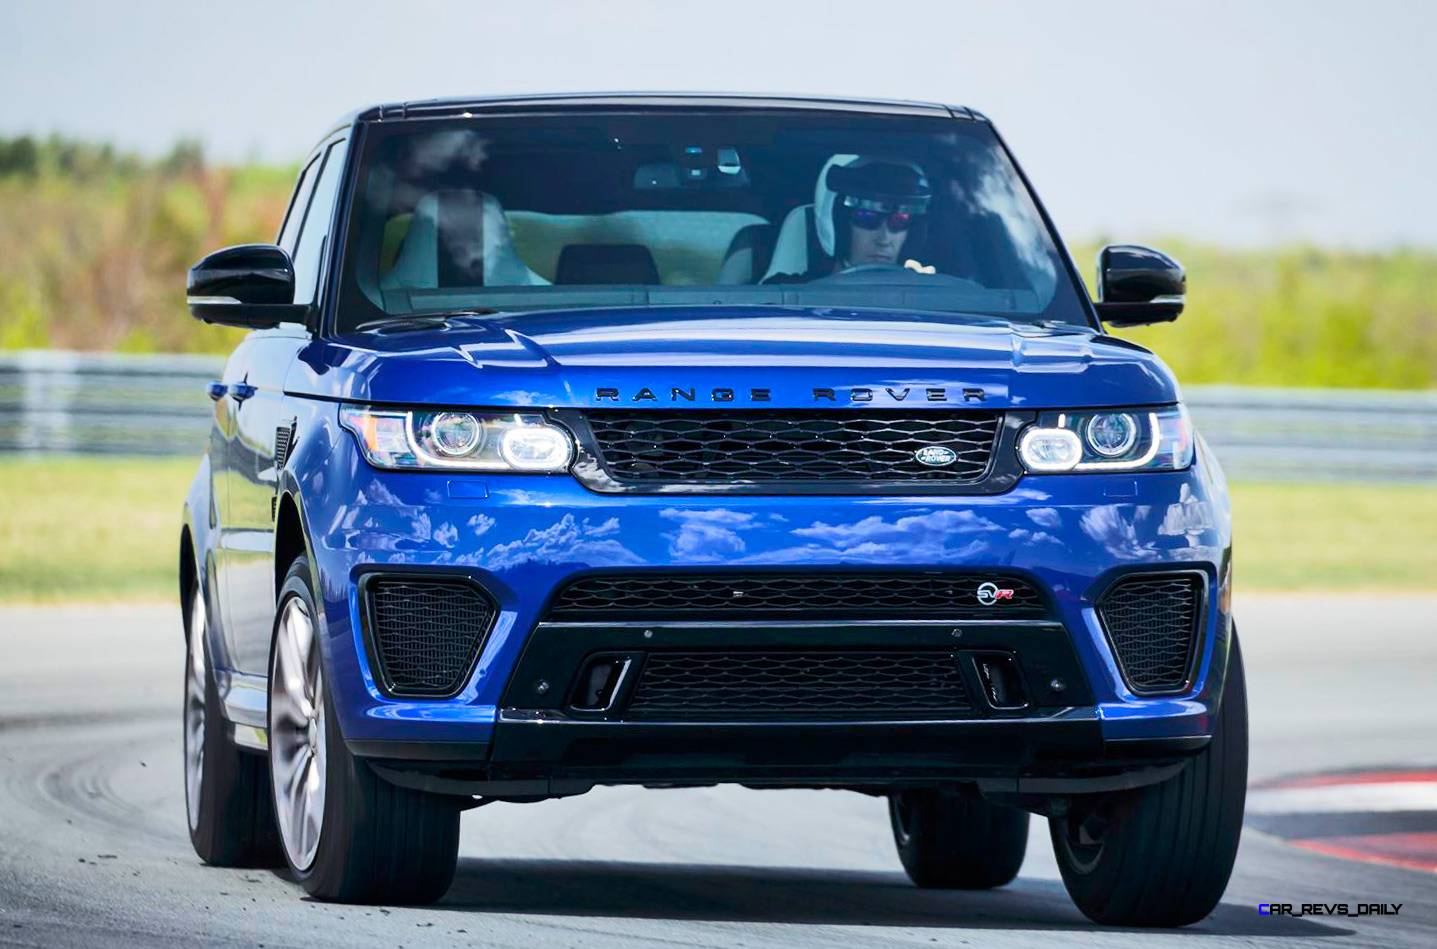 RR_Sport_SV-R_Estoril_Blue_096_(109402)